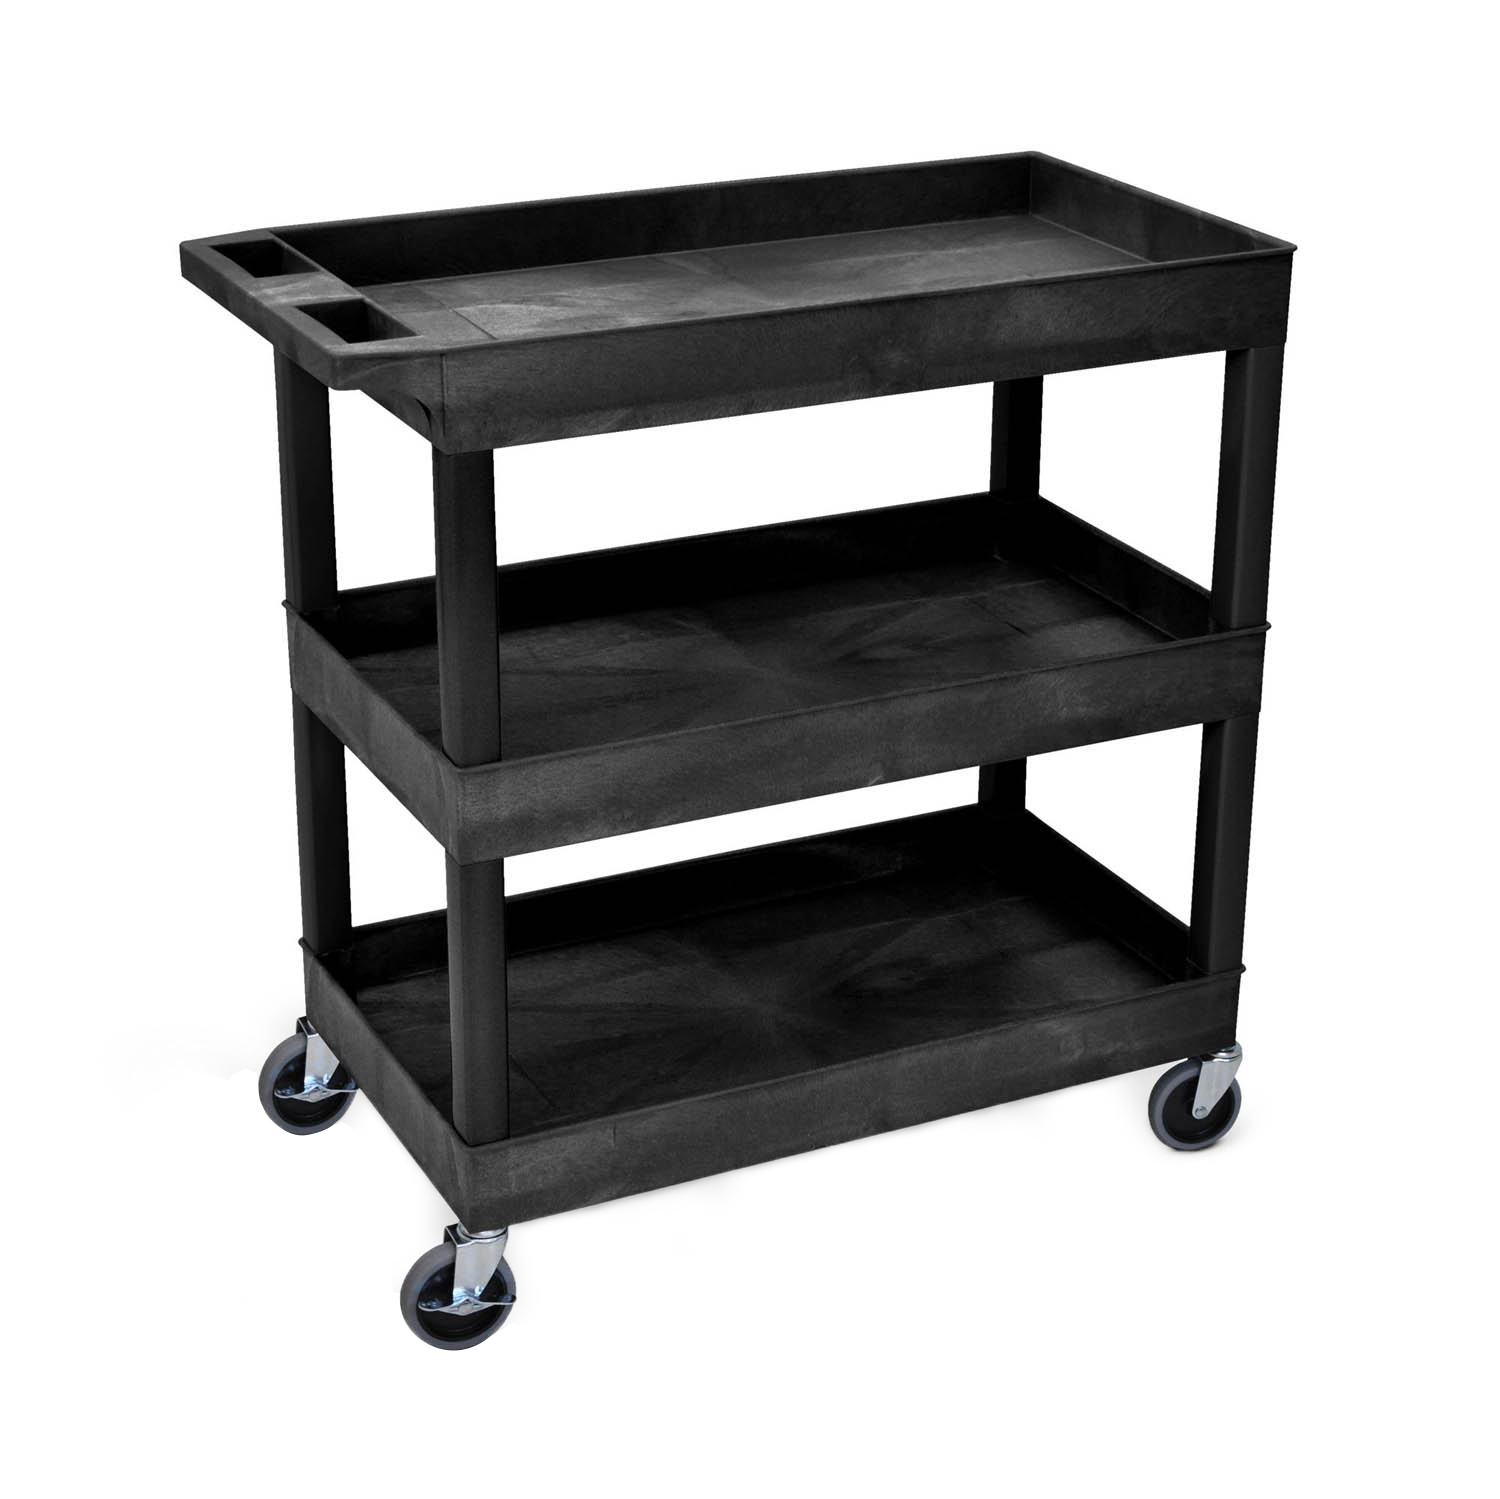 18 x 32 Tub Cart 3 shelves Black